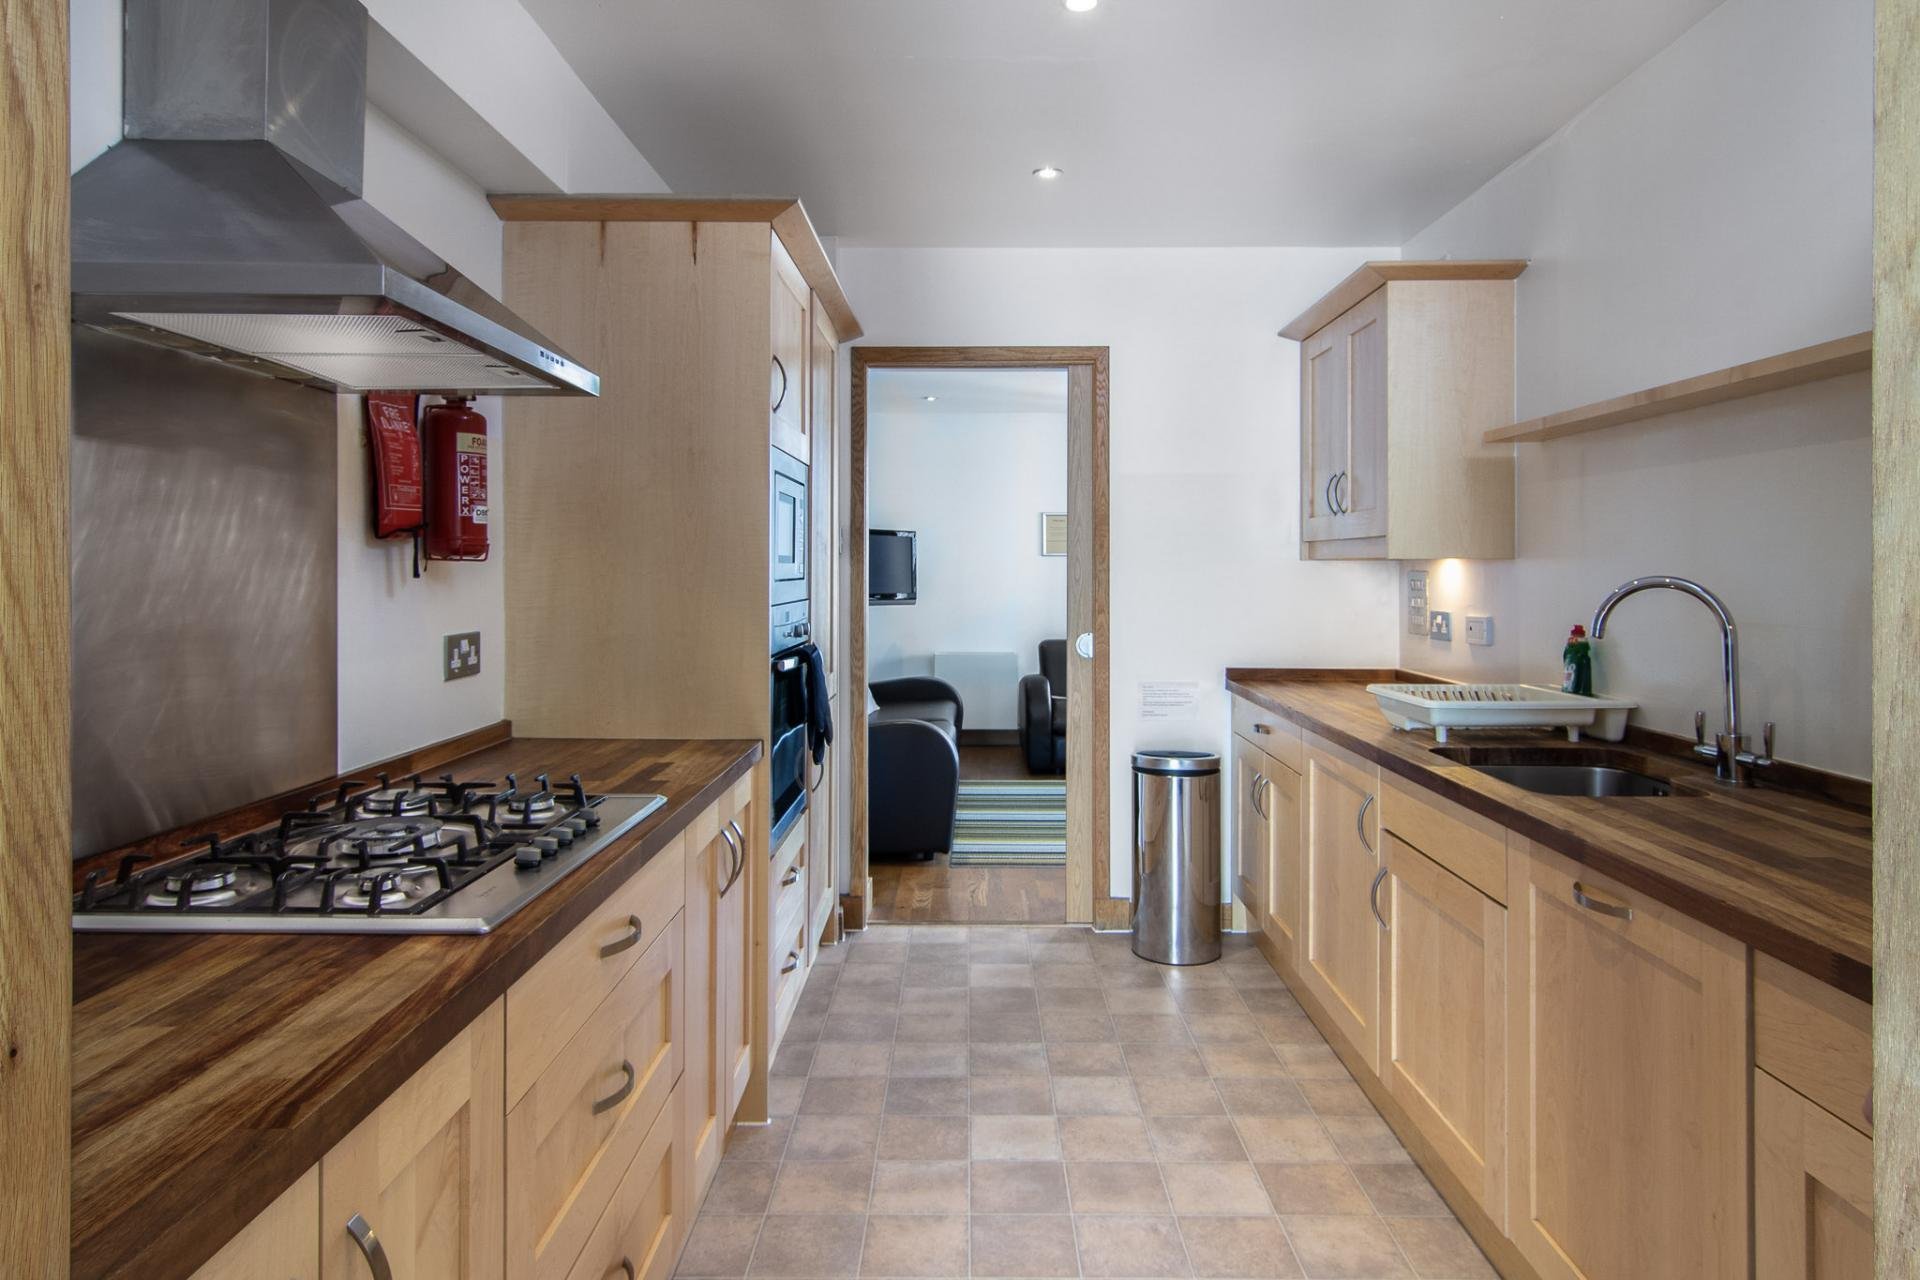 Kitchen at Staycity Edinburgh Leamington Wharf, Haymarket, Edinburgh - Citybase Apartments